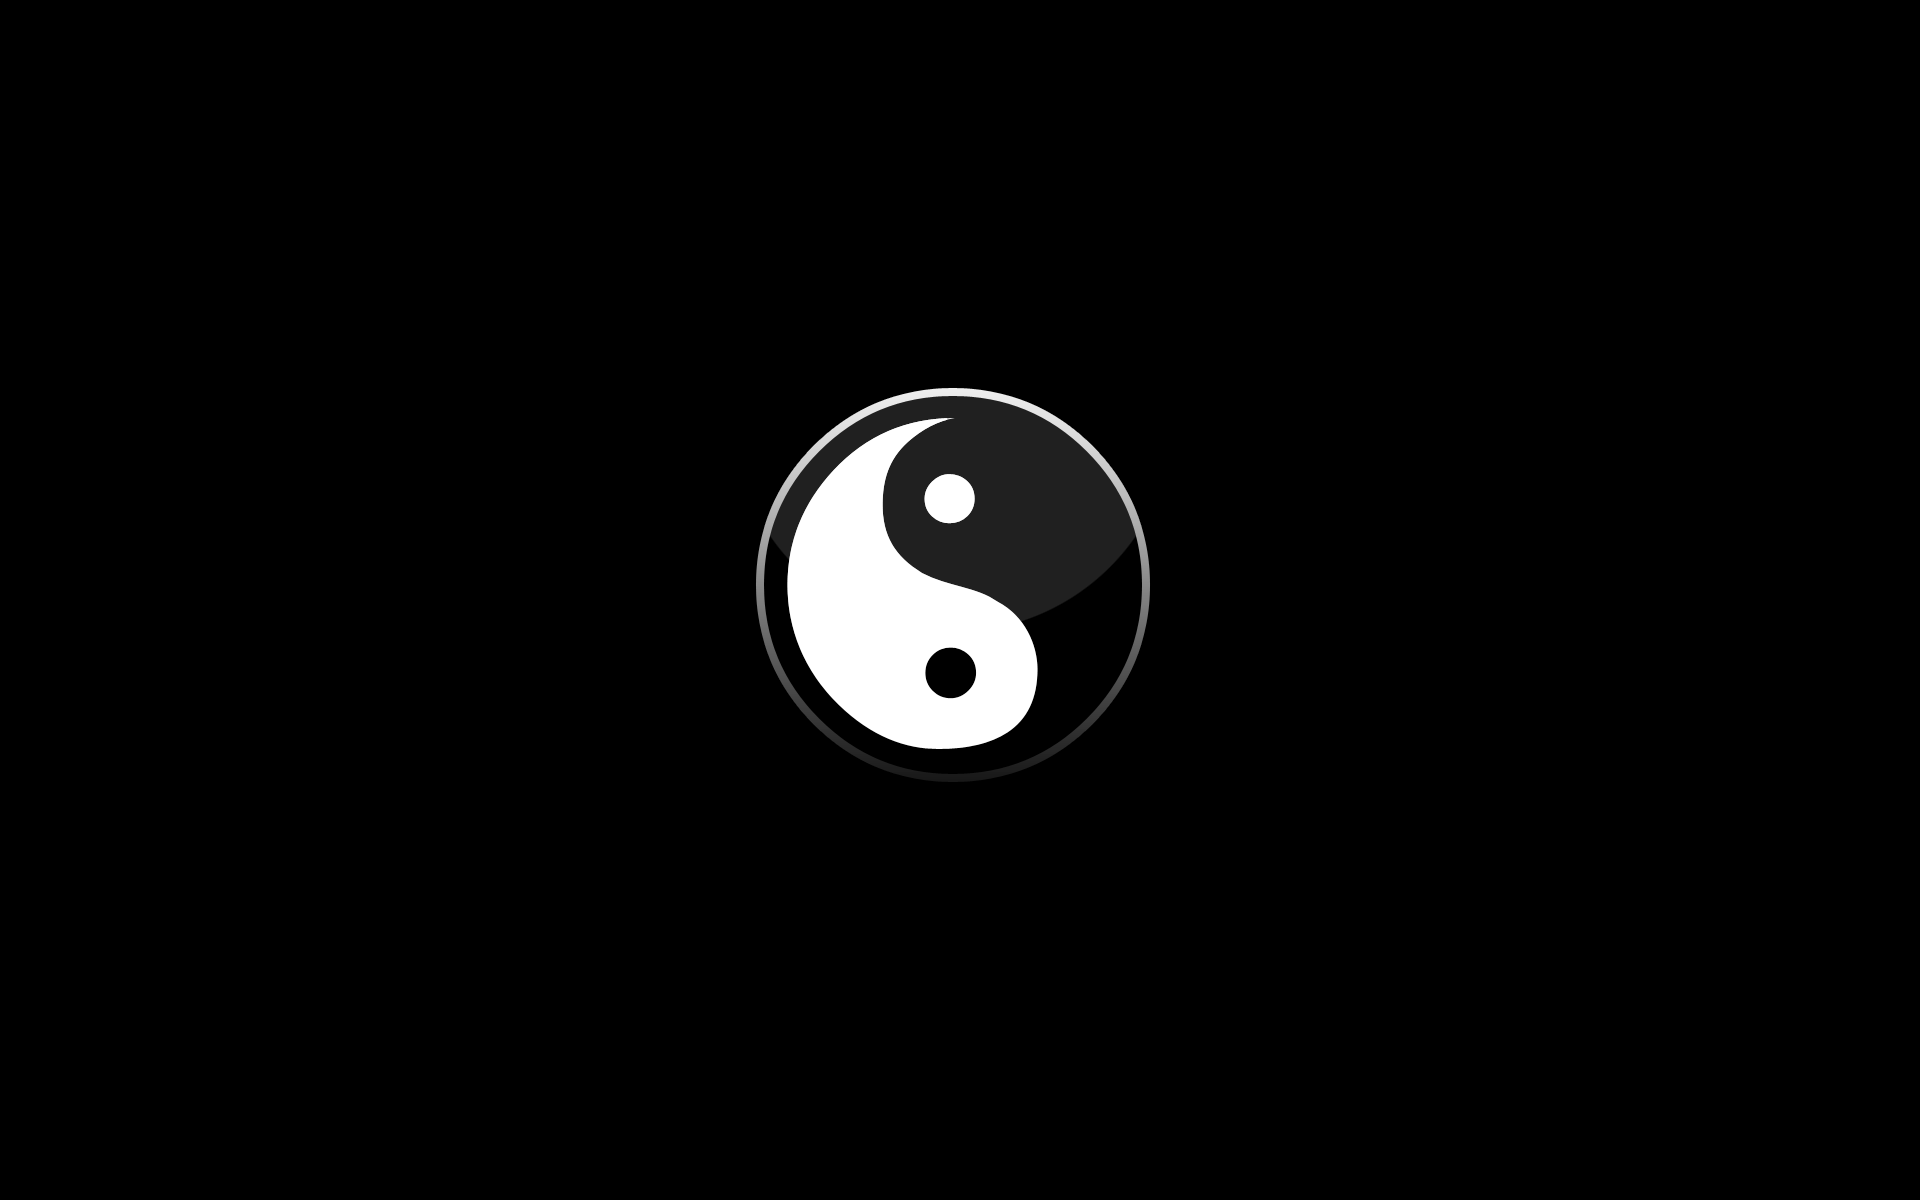 yin yang wallpaper hd, yin yang images free download